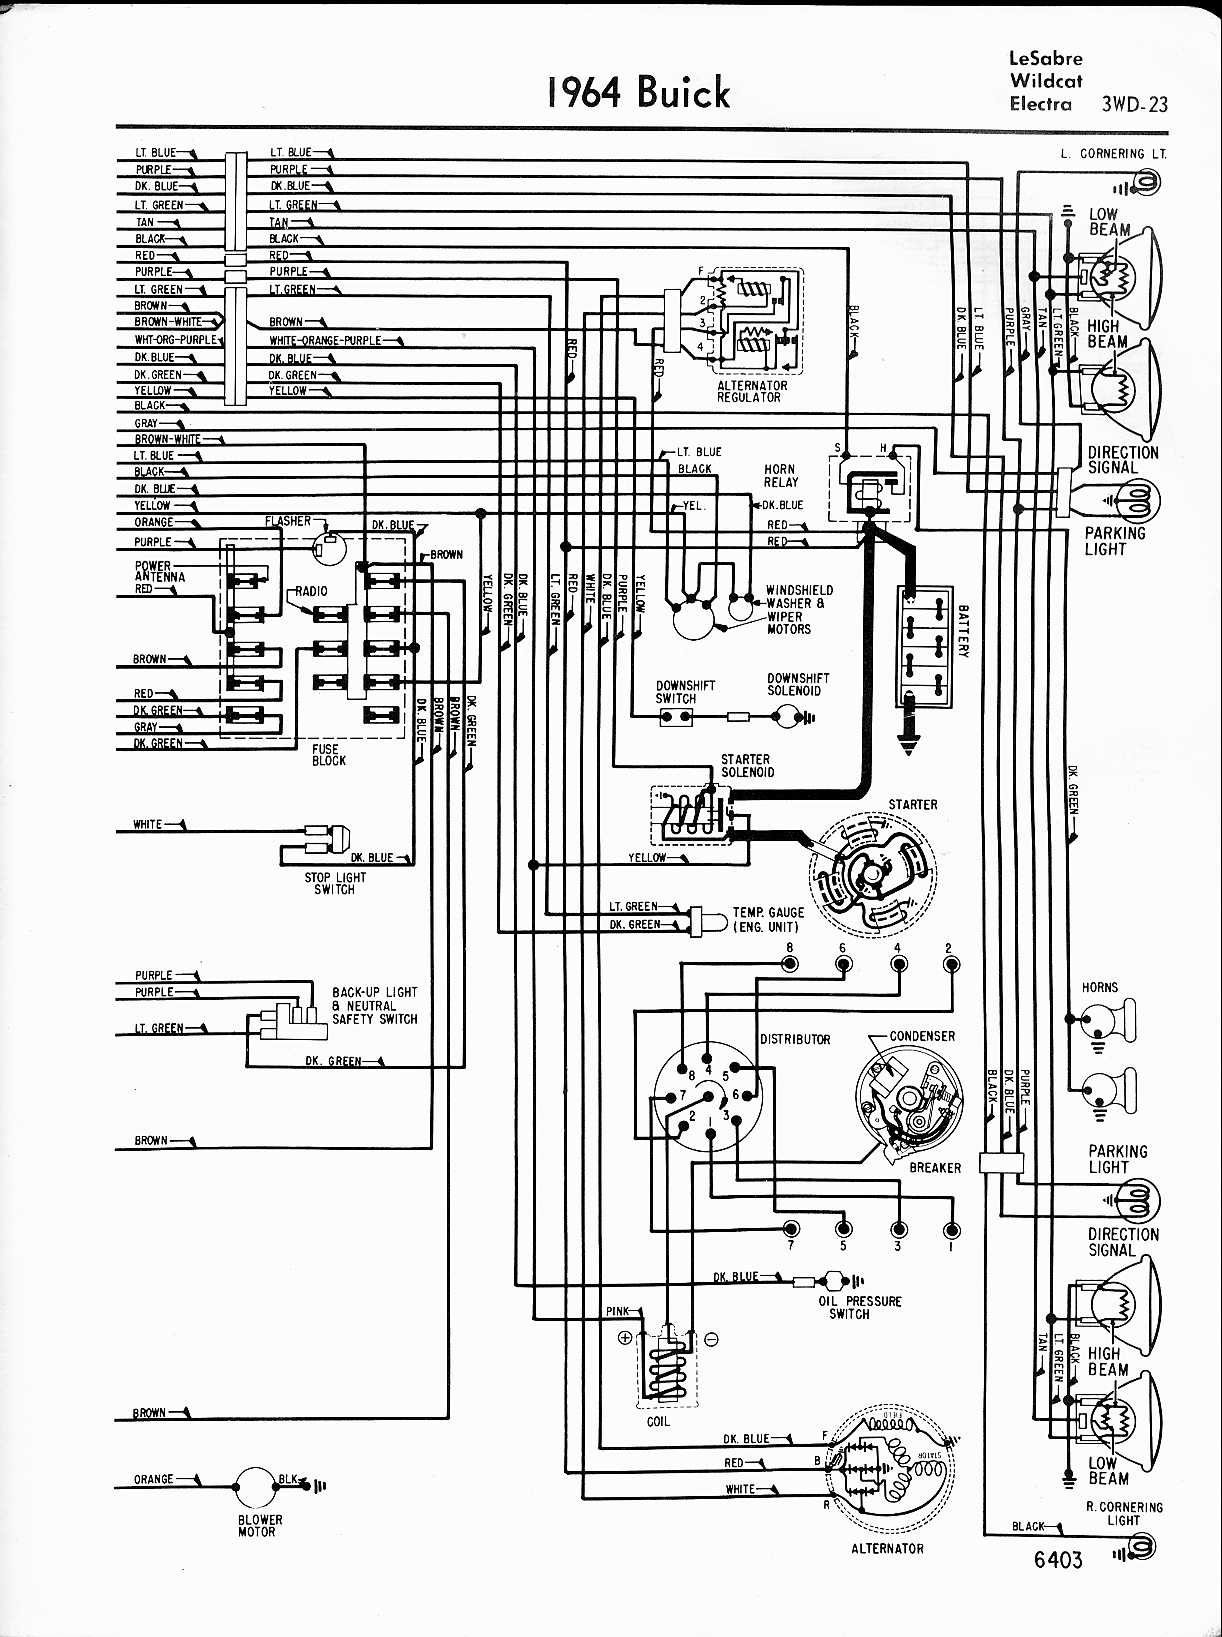 1989 buick wiring diagram trusted wiring diagrams rh kroud co 2010 buick lacrosse radio wiring diagram 2008 buick lacrosse radio wiring diagram